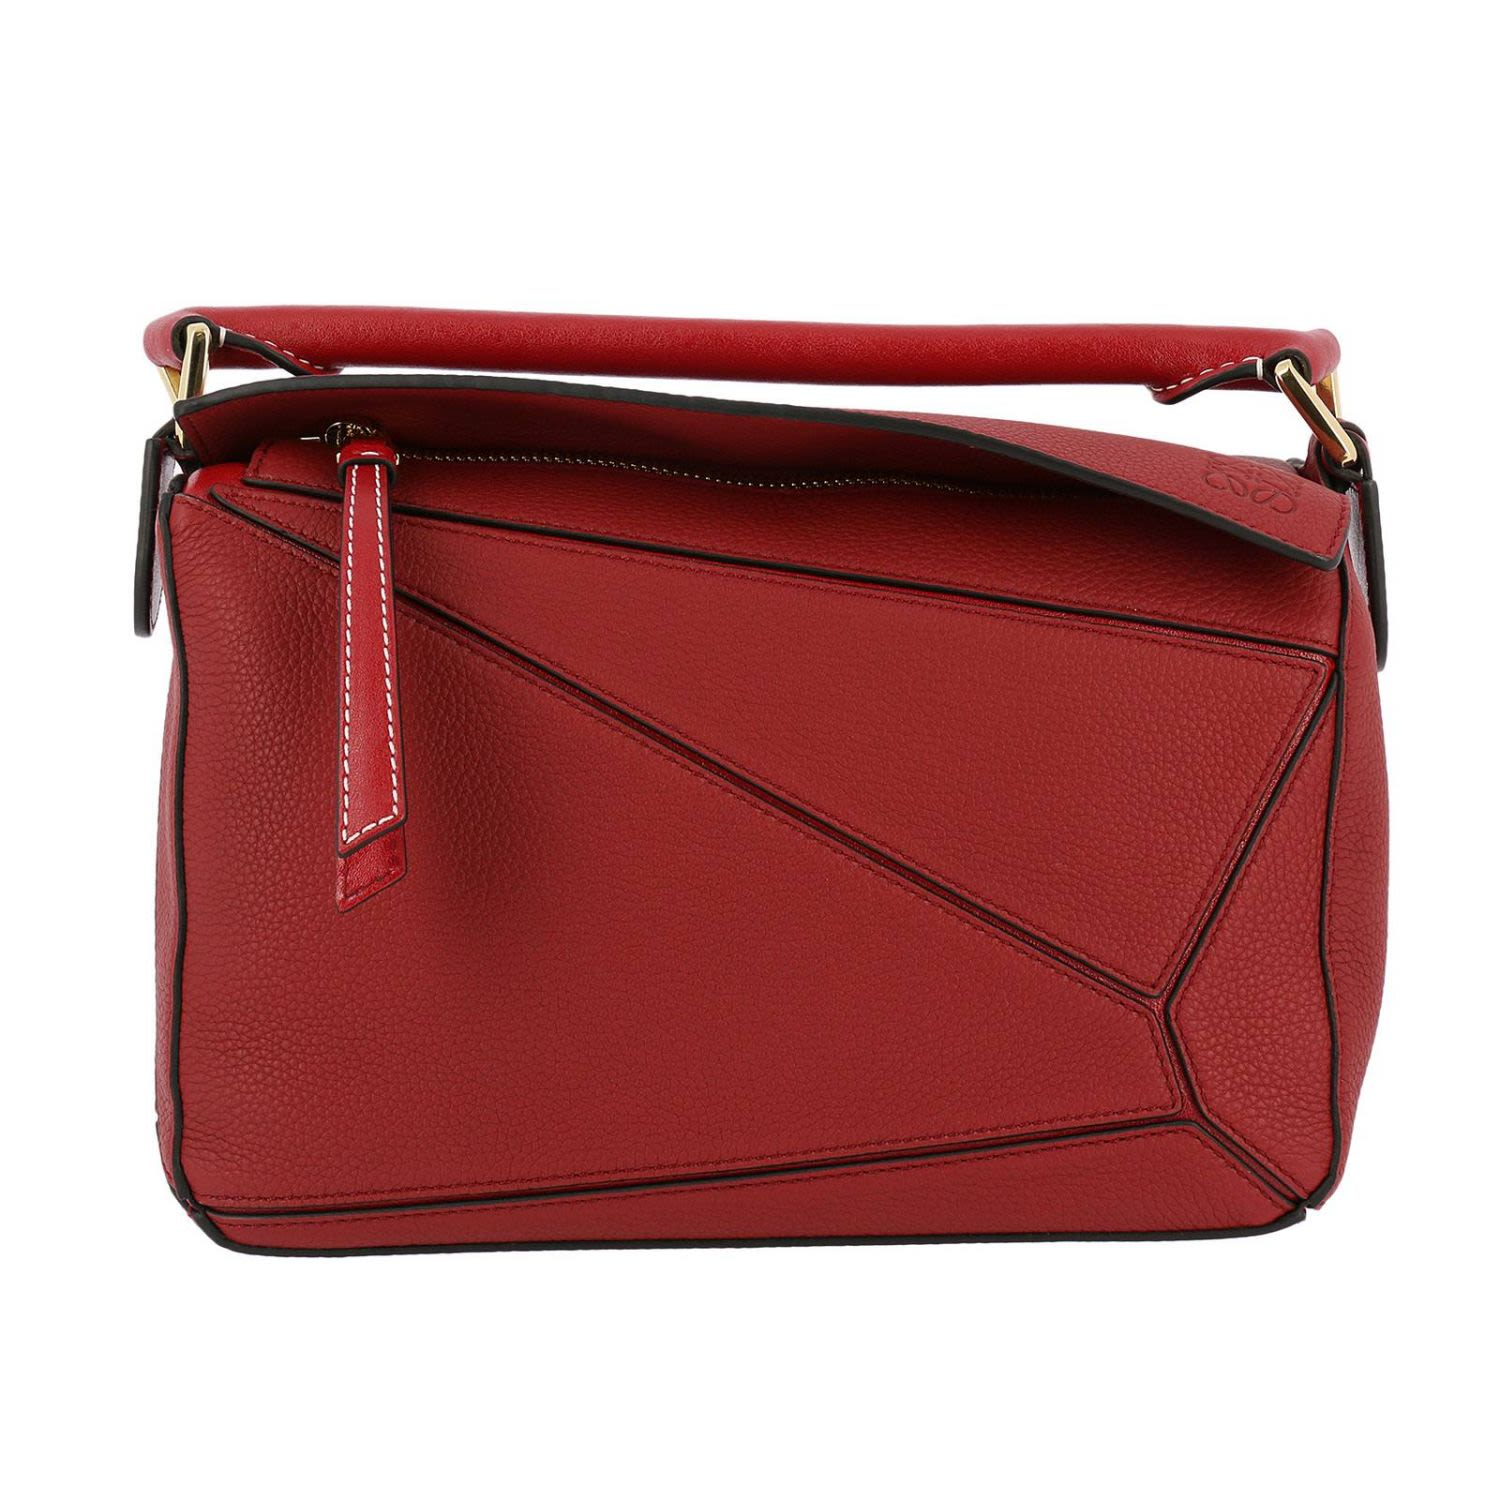 HANDBAG SHOULDER BAG WOMEN LOEWE